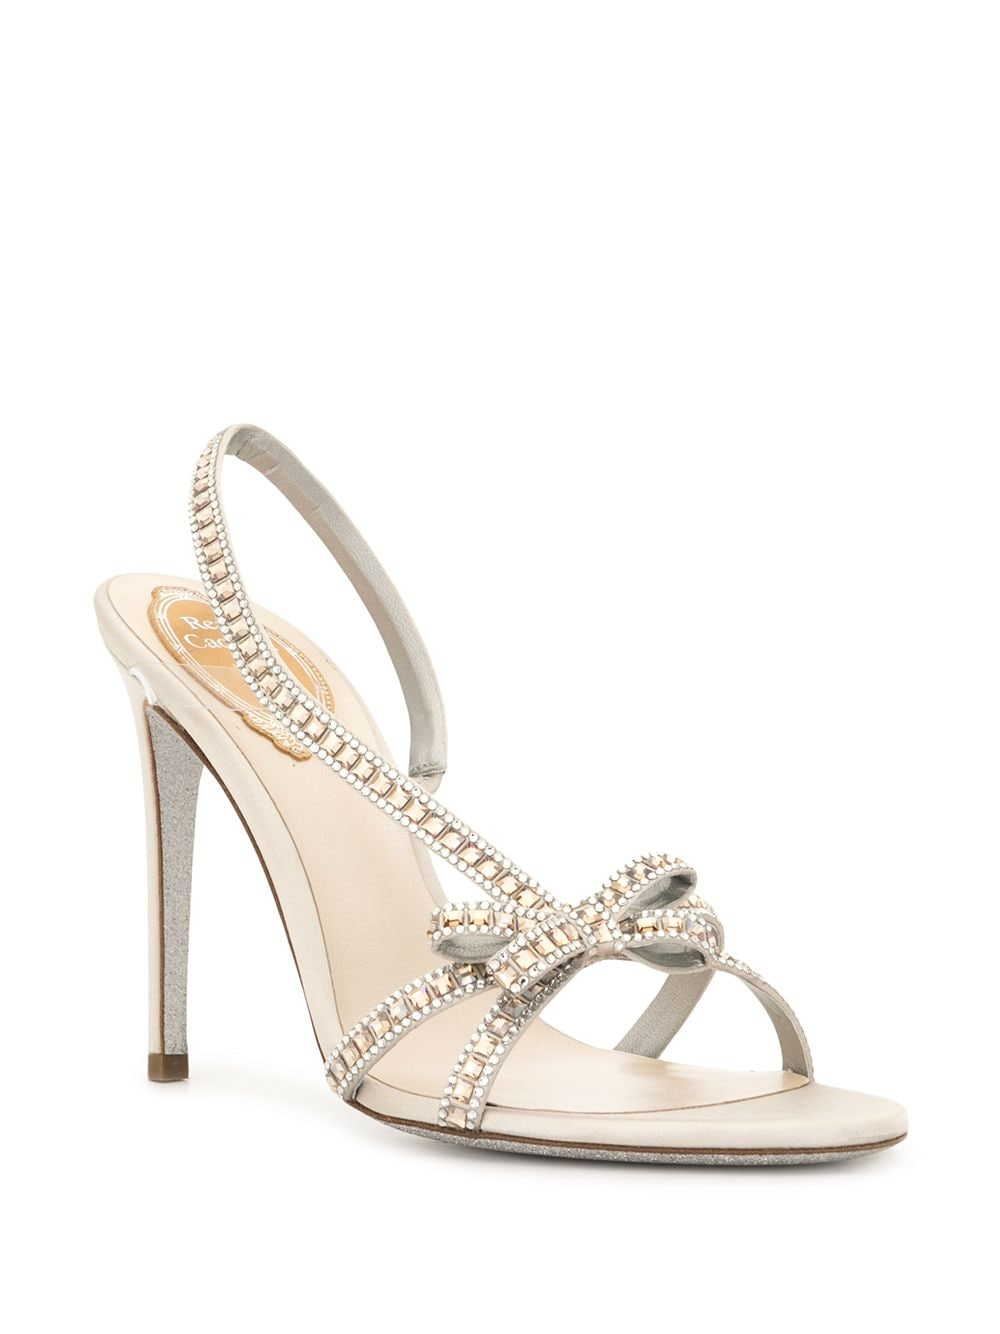 Rainbow René Caovilla crystal embellished strappy bow sandals